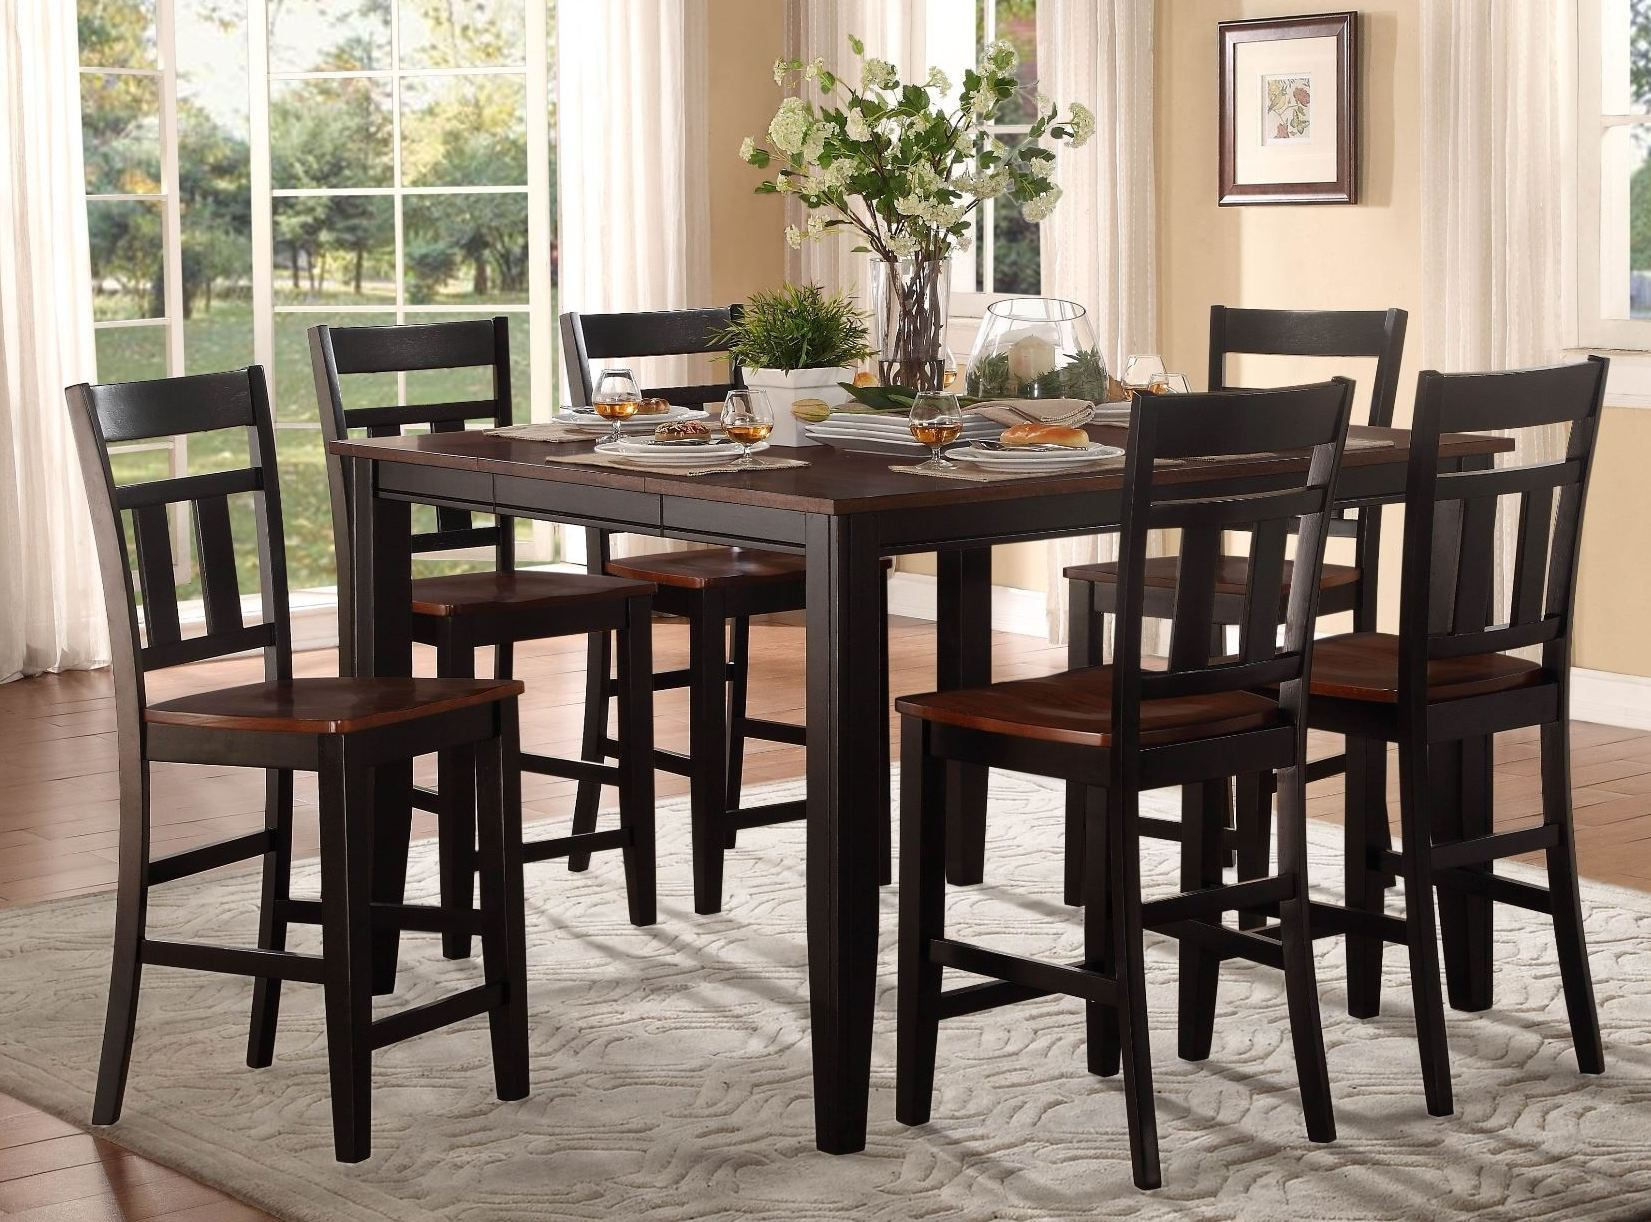 Westport Extendable Counter Height Dining Room Set From Homelegance 5079bk 36 Coleman Furniture